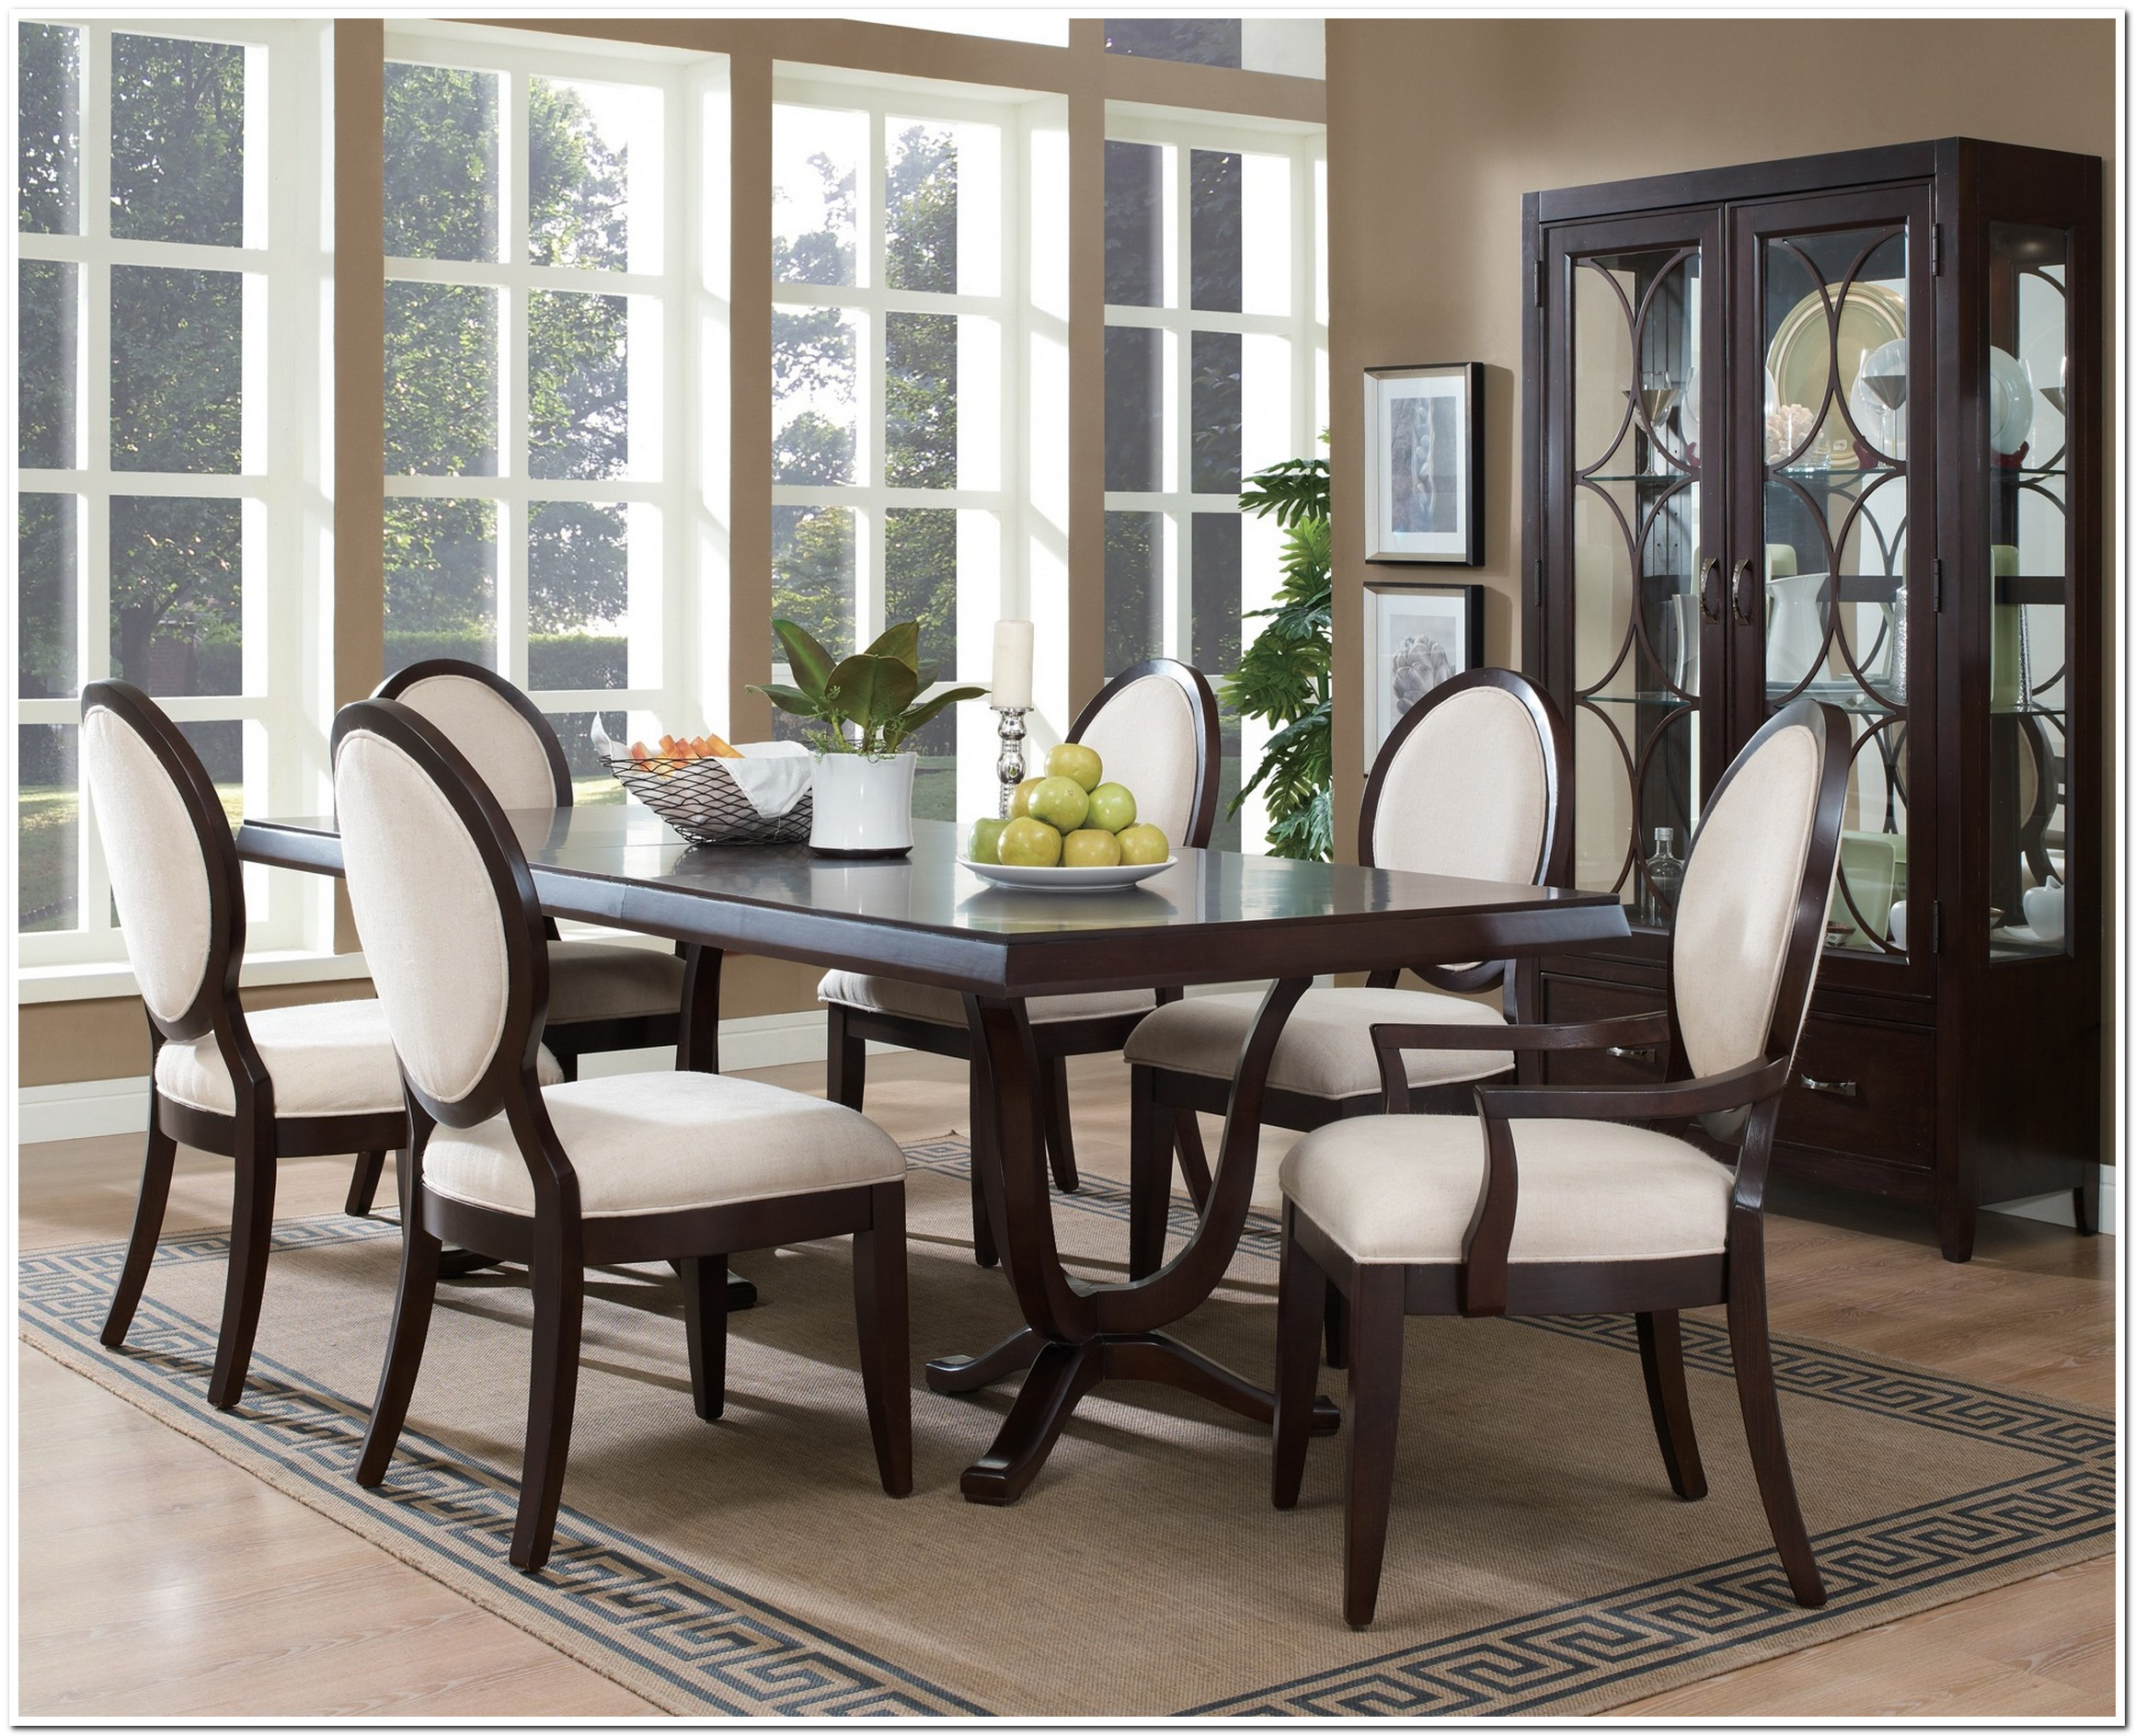 Know what dining room furniture sets you want to bring out for Dining room furniture images